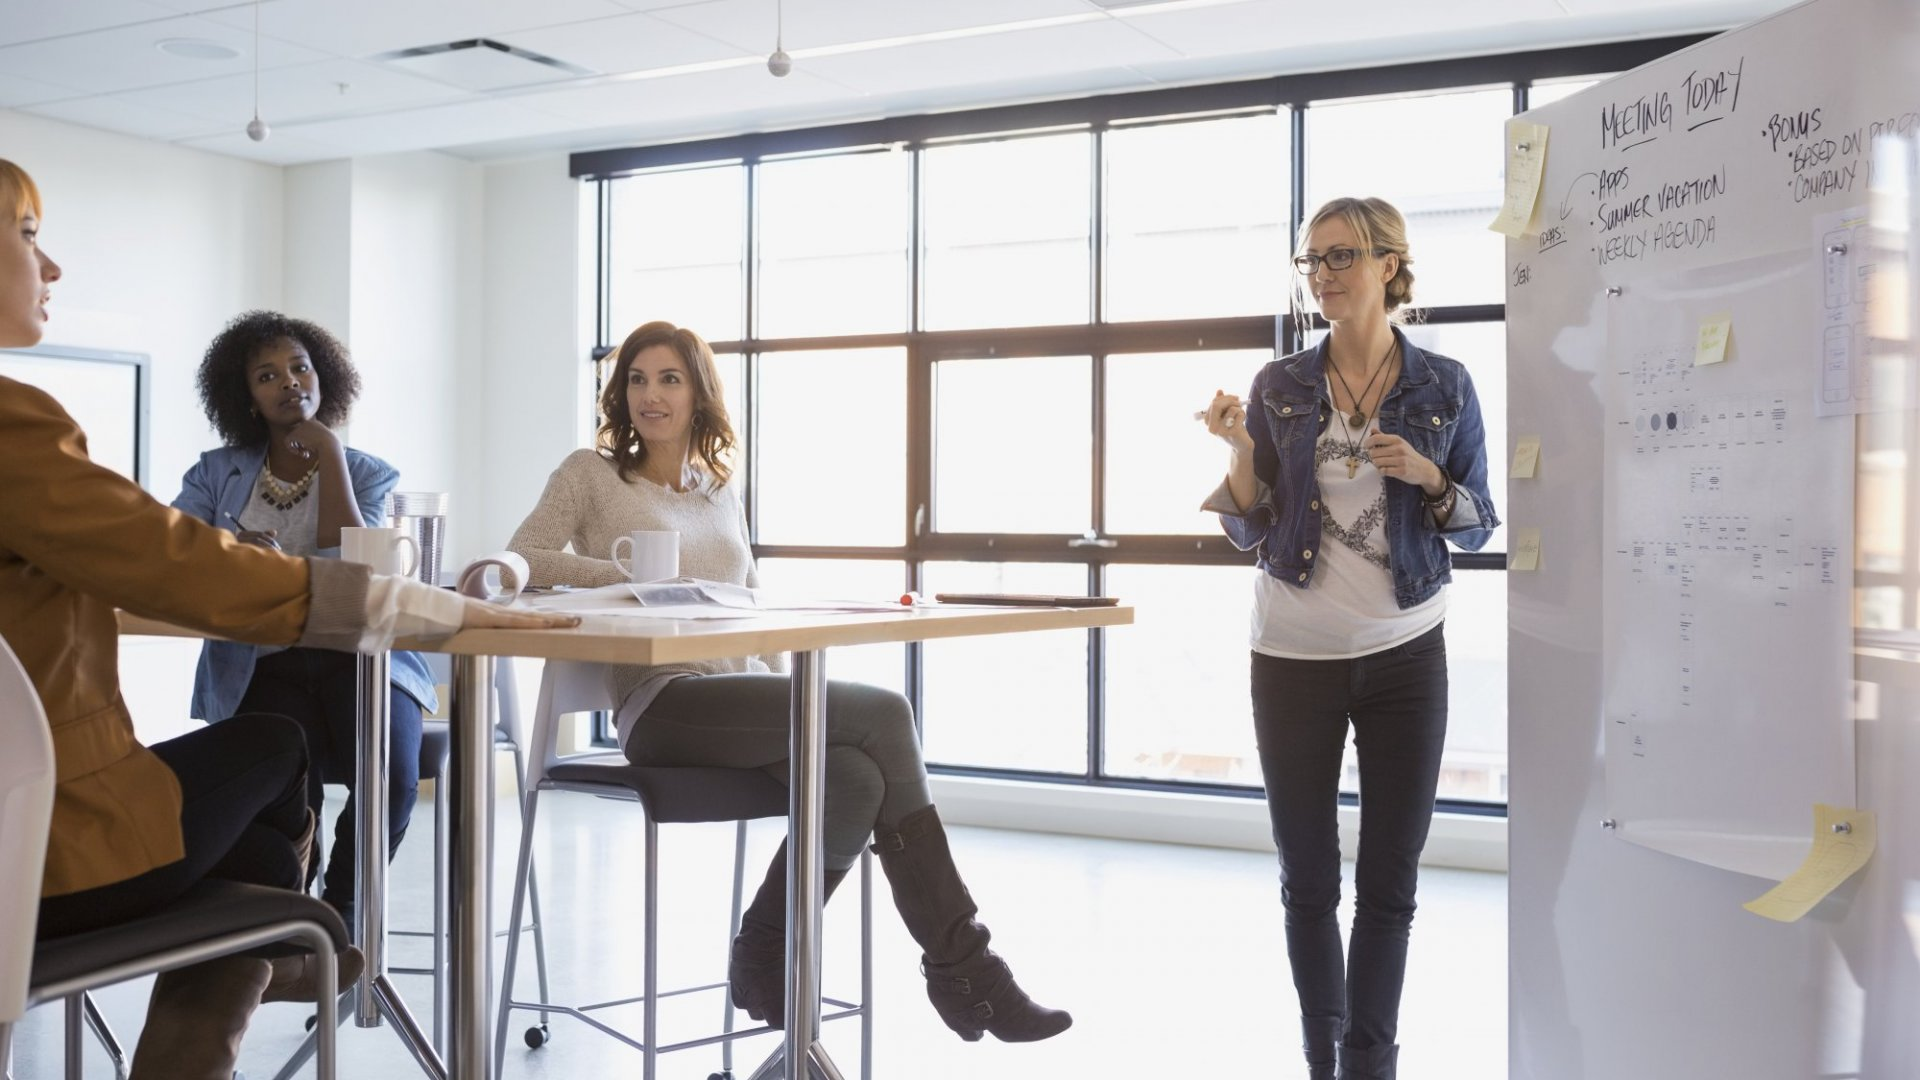 Why Good Office Design Can Help Crack the Glass Ceiling